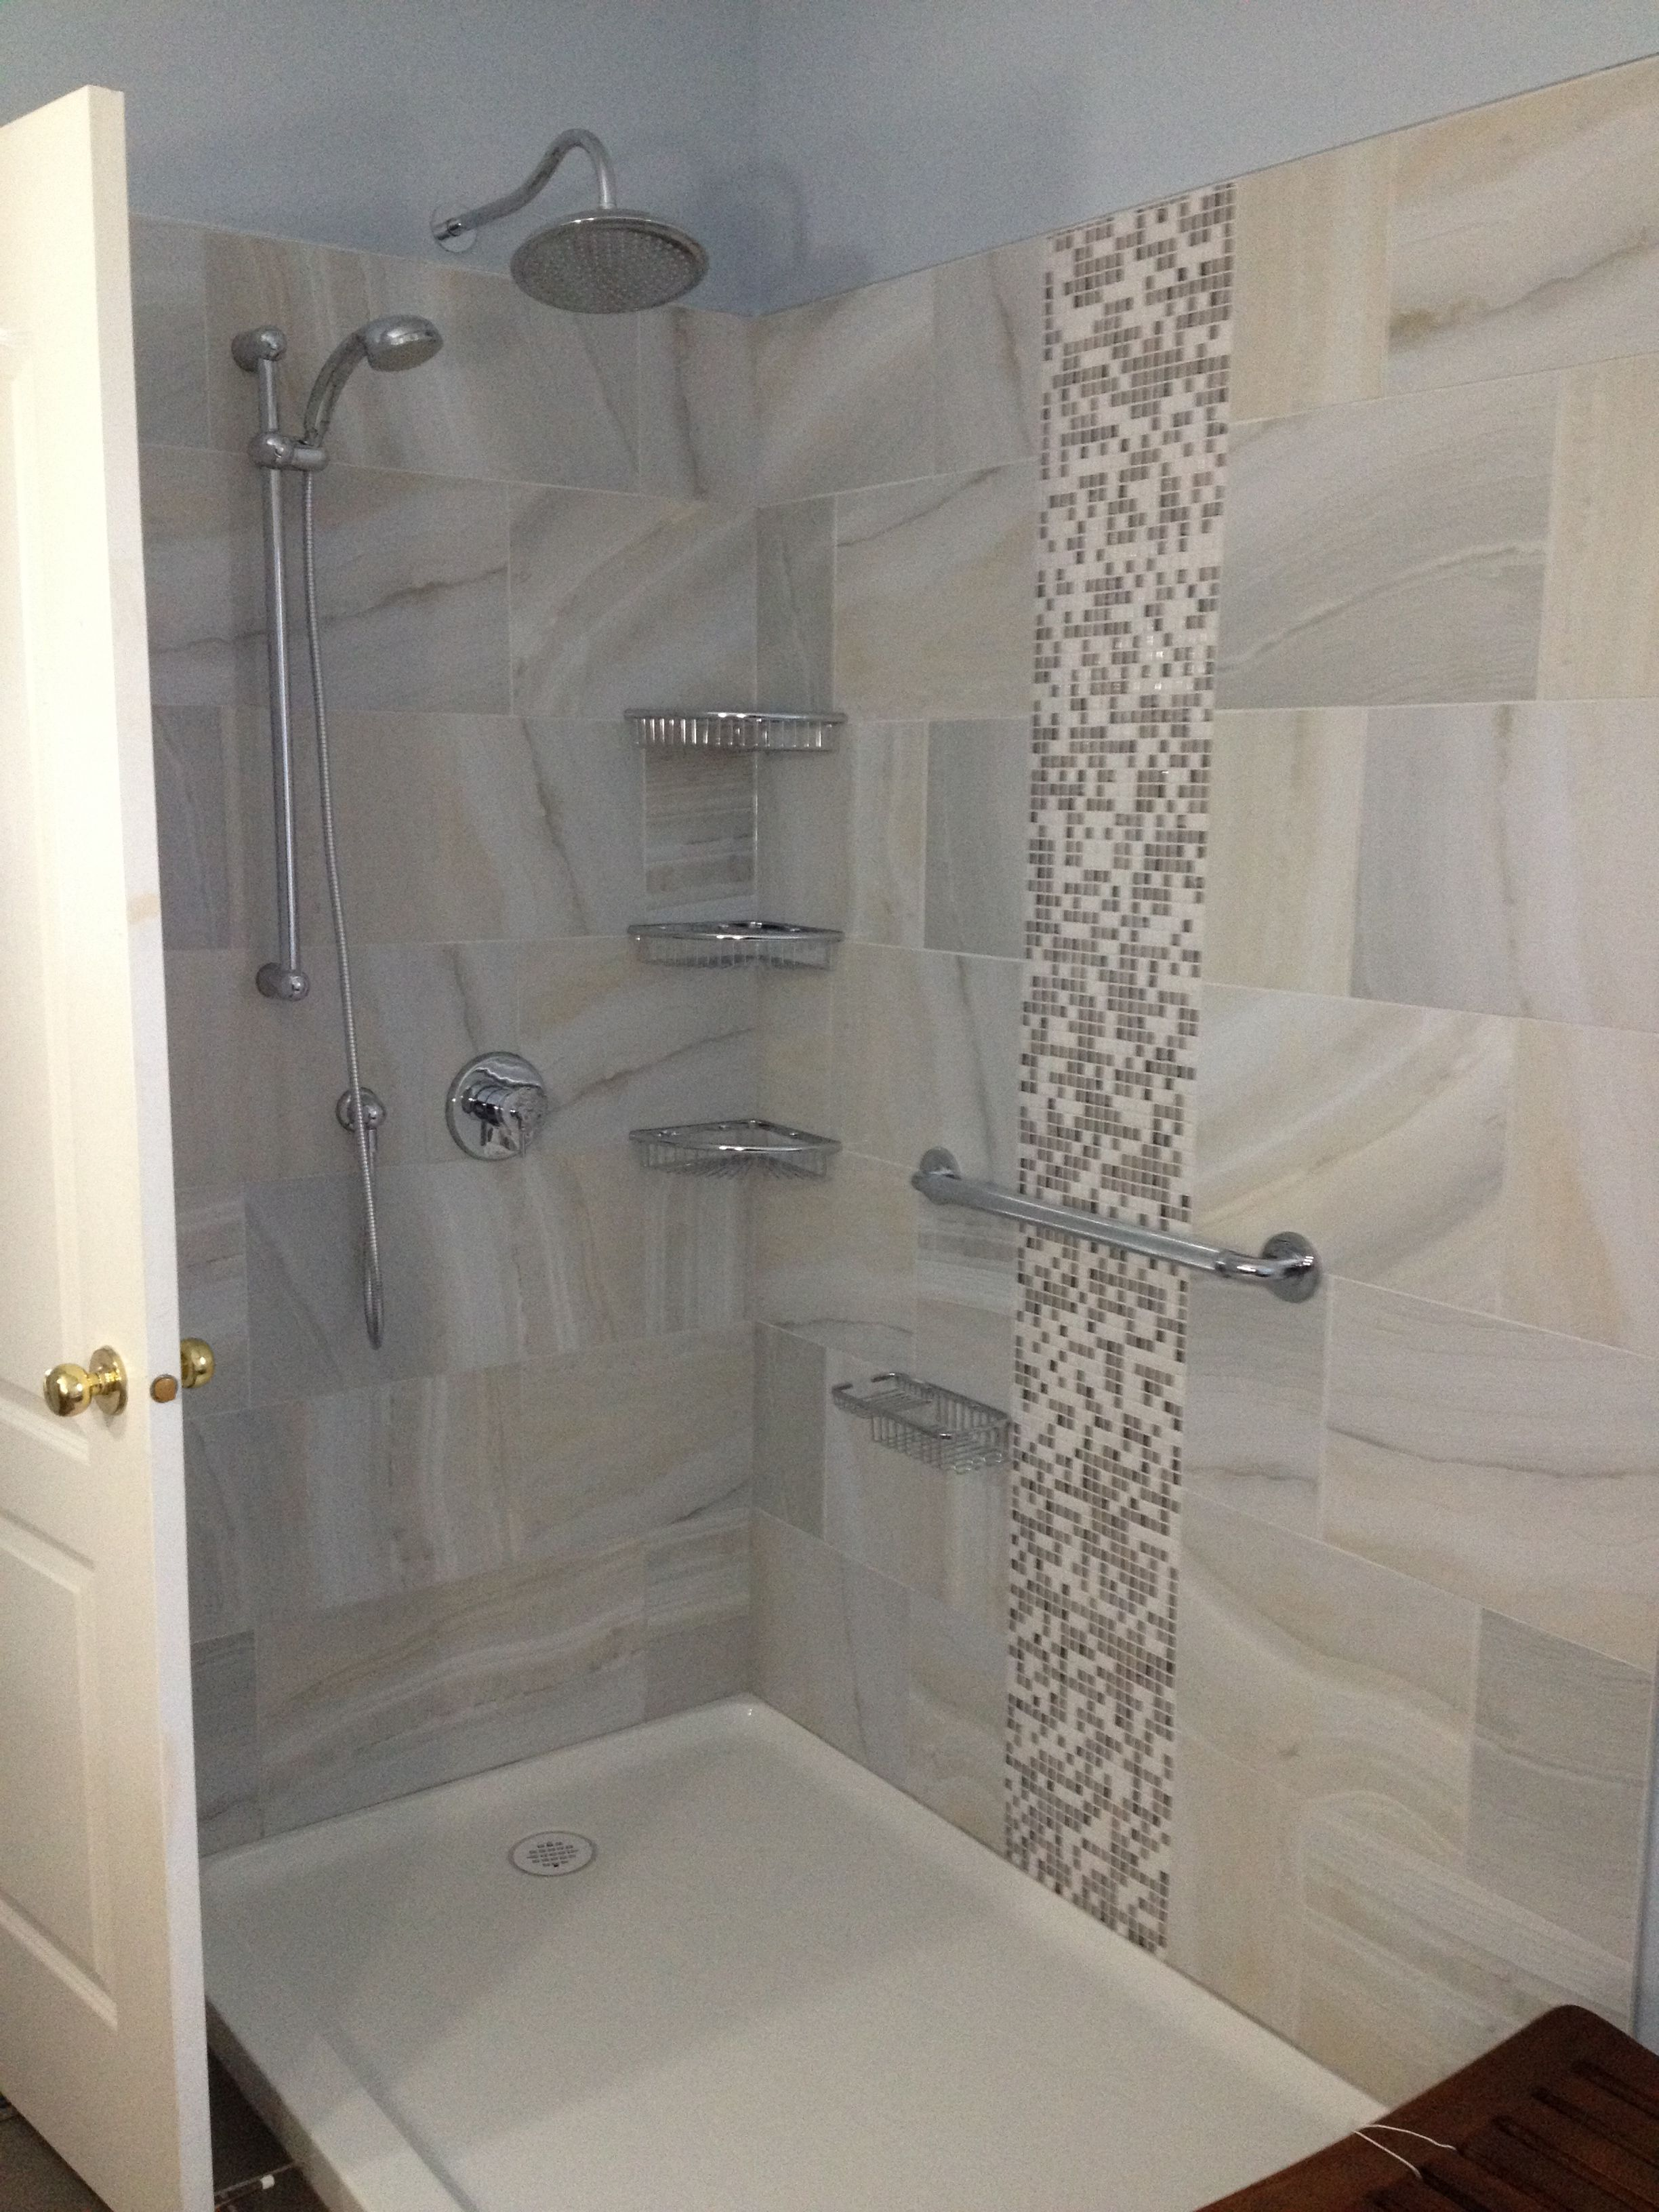 Waterfall Showers Designs Capolavoro 43renovation 43inc 43 43acrylic 43shower 43pan 43 43marble